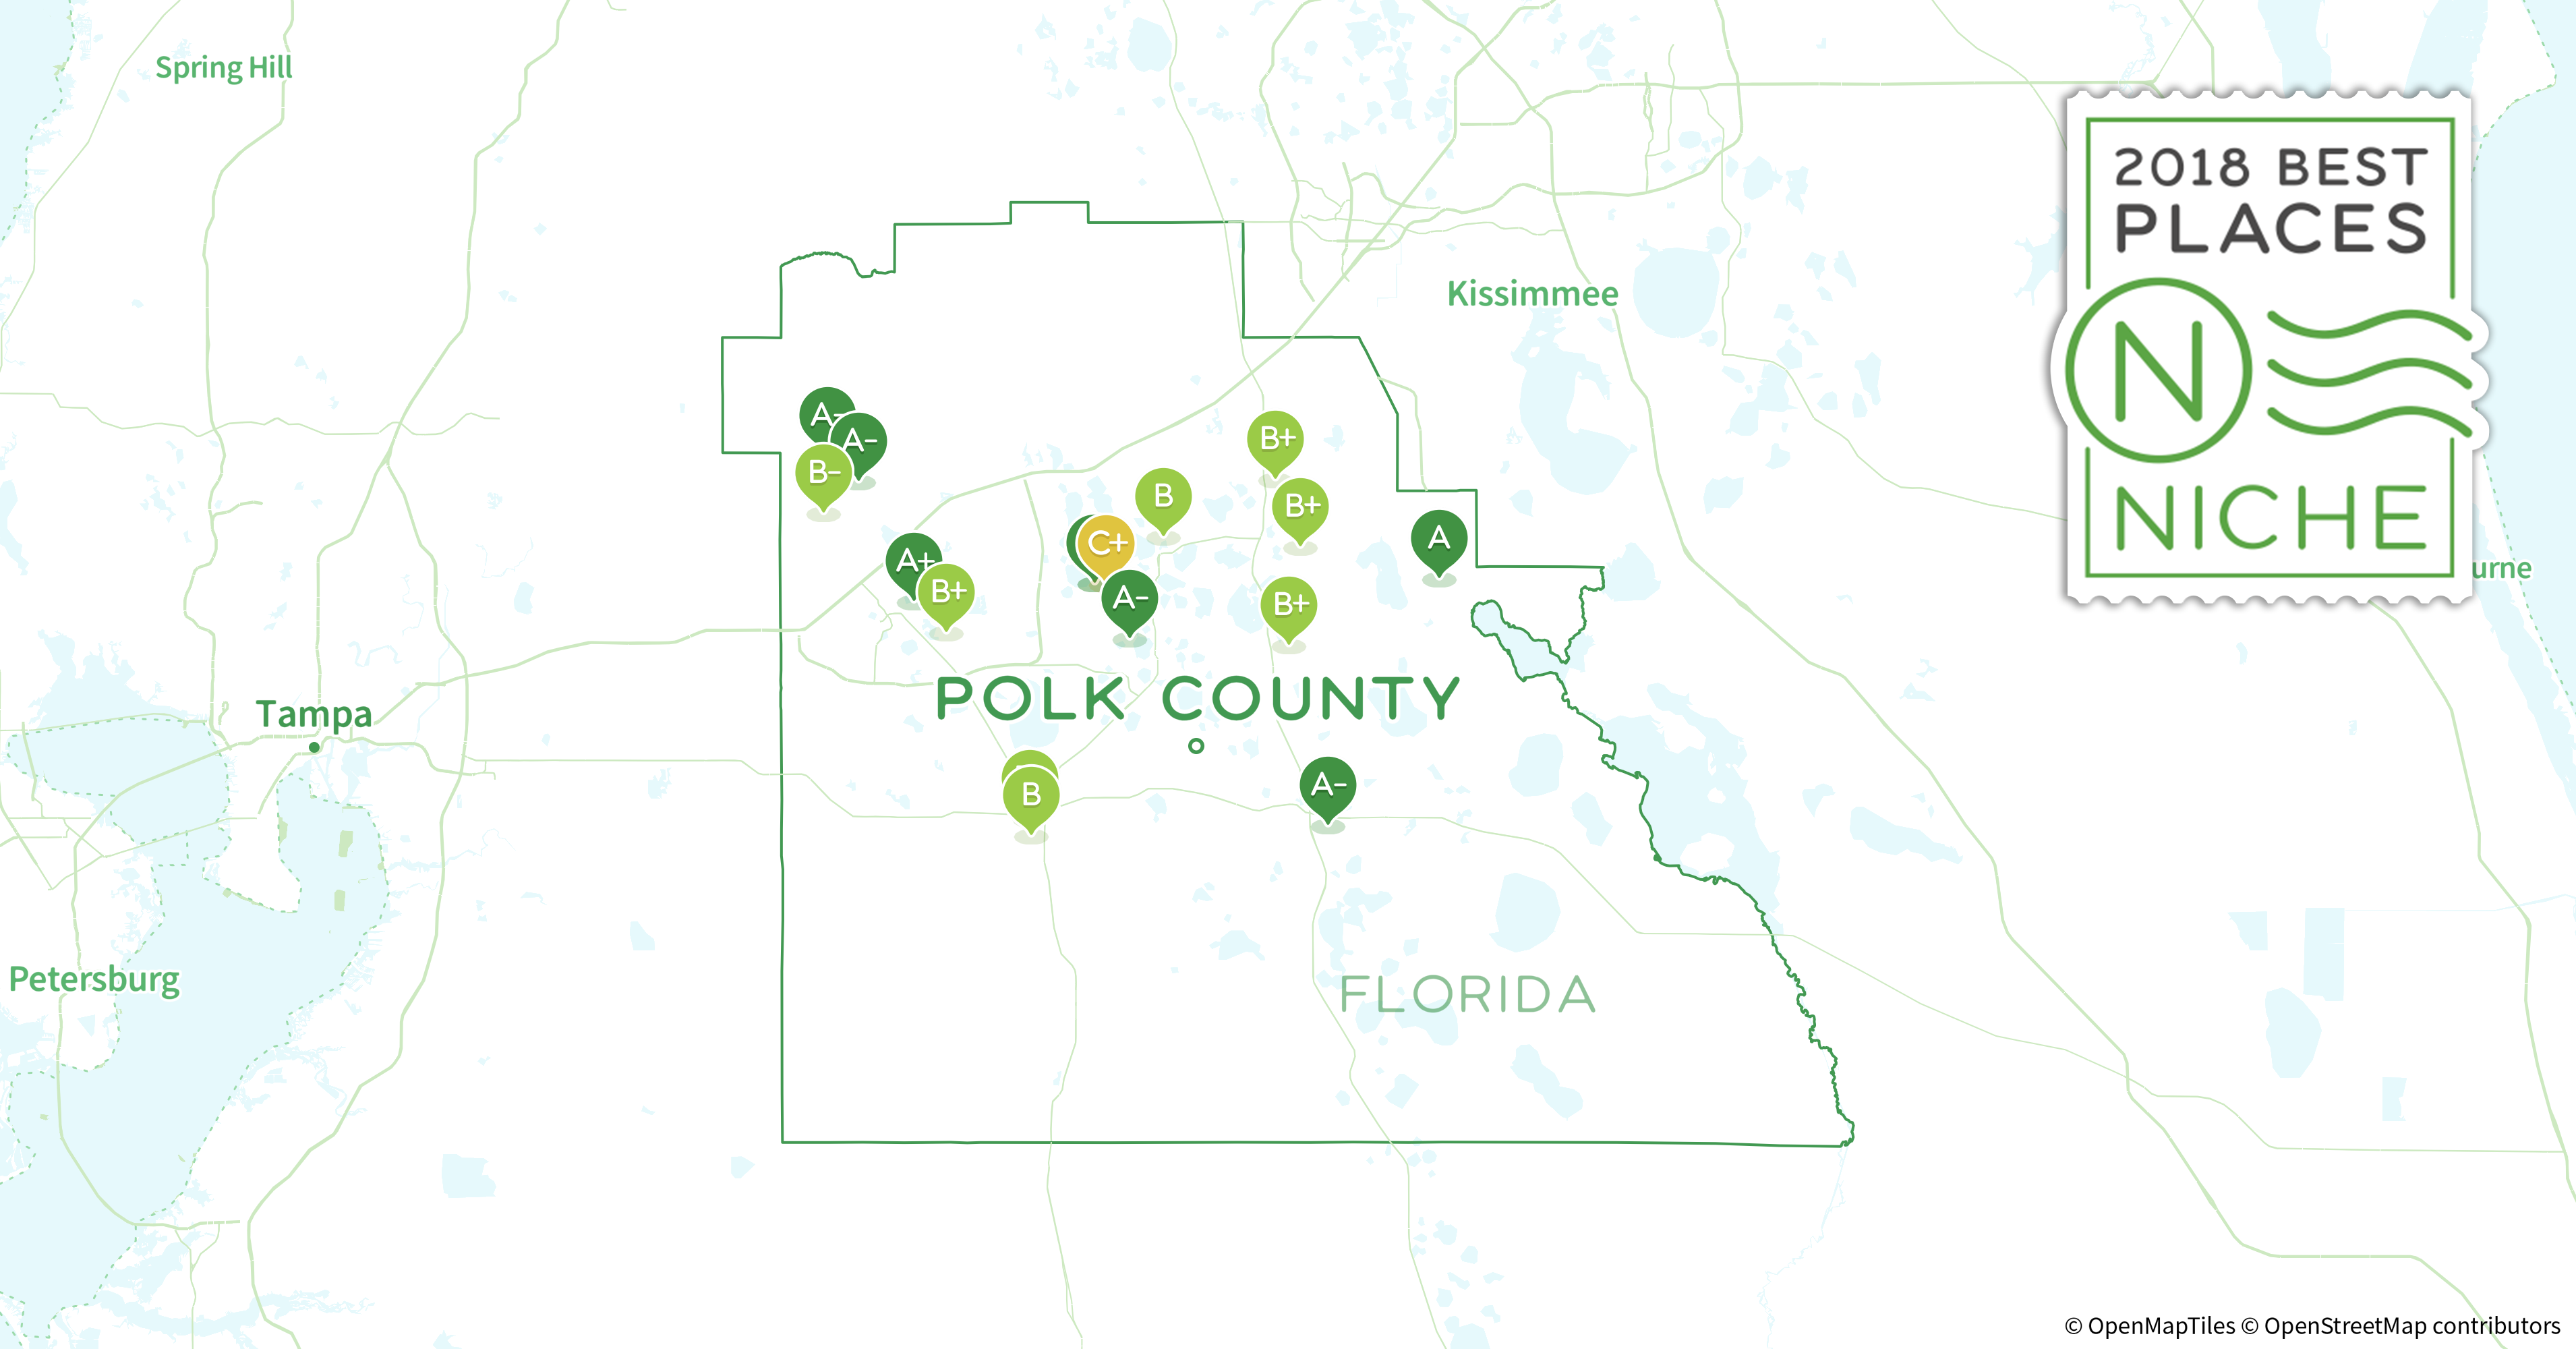 Polk County Florida Map.2018 Best Places To Retire In Polk County Fl Niche